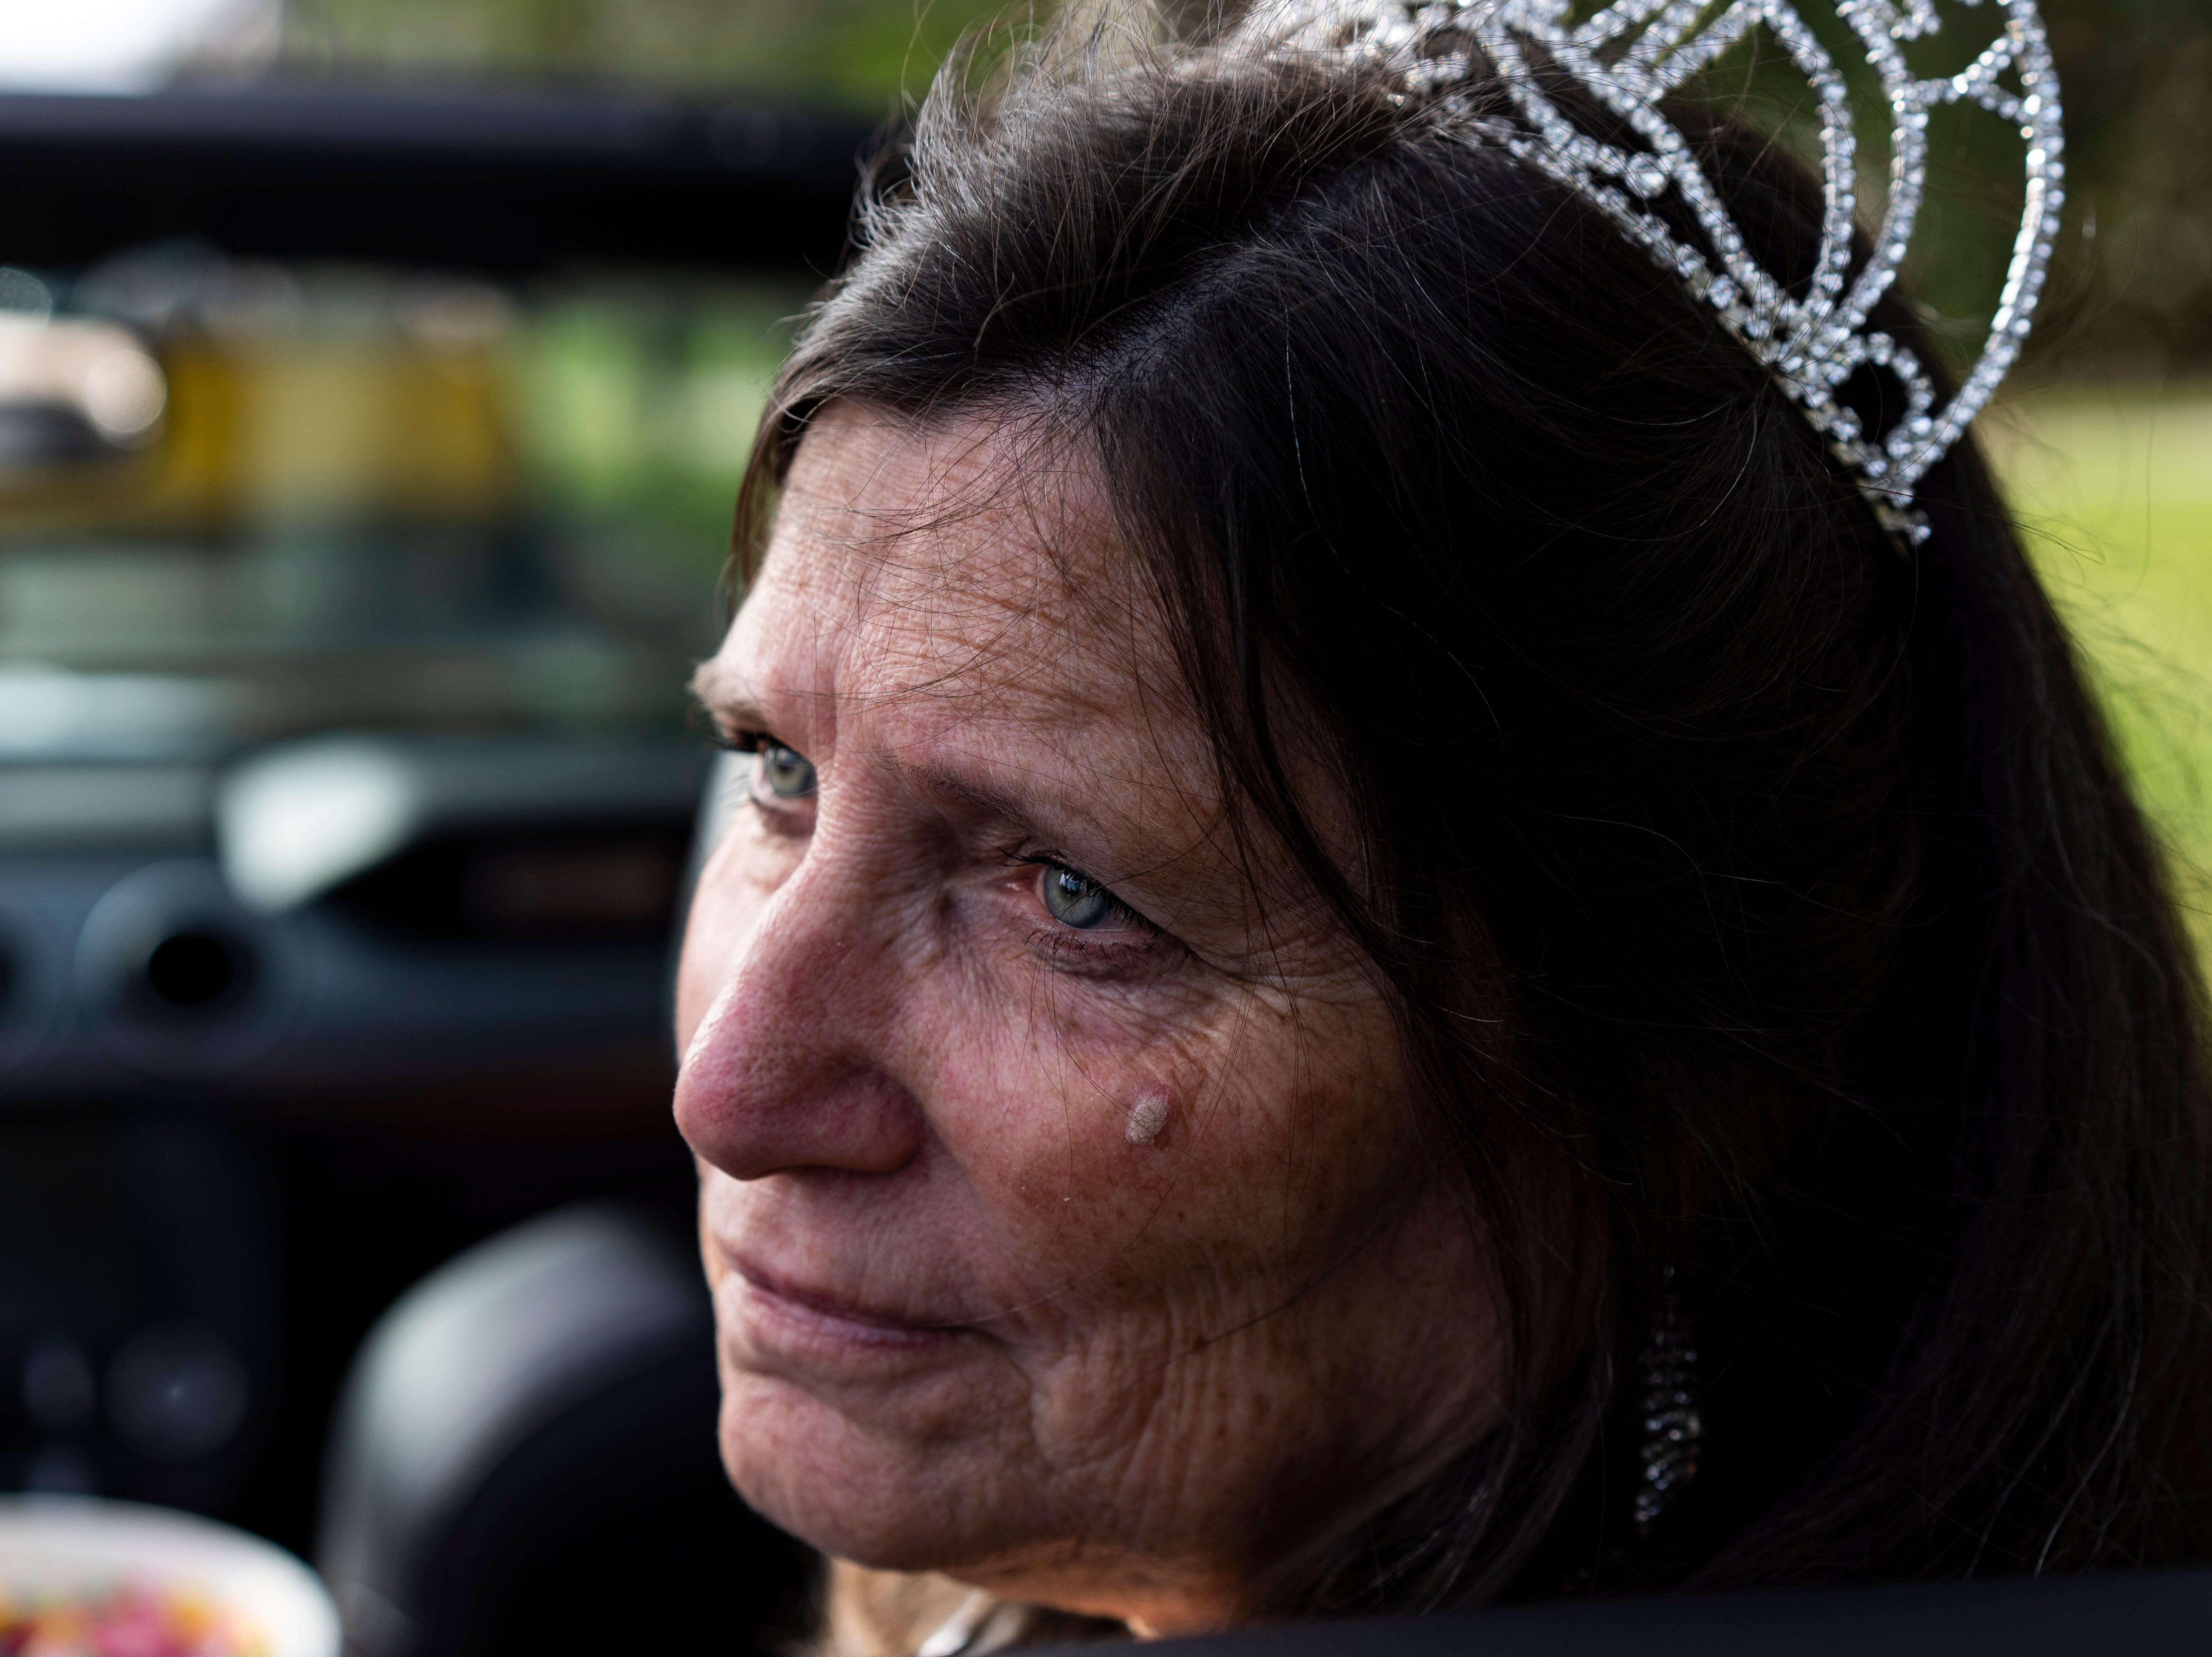 Vicki Batcher, 67, waits in a convertible for the 70th annual Swamp Buggy Parade to start Saturday morning, Nov. 3, 2018. She was crowned Swamp Buggy Queen in 1969. She's one of nearly 70 queens part of swamp buggy history. Saturday's parade featured past Swamp Buggy Queens, Naples High School marching band, racing buggies and Swampy - the race mascot, among other things.